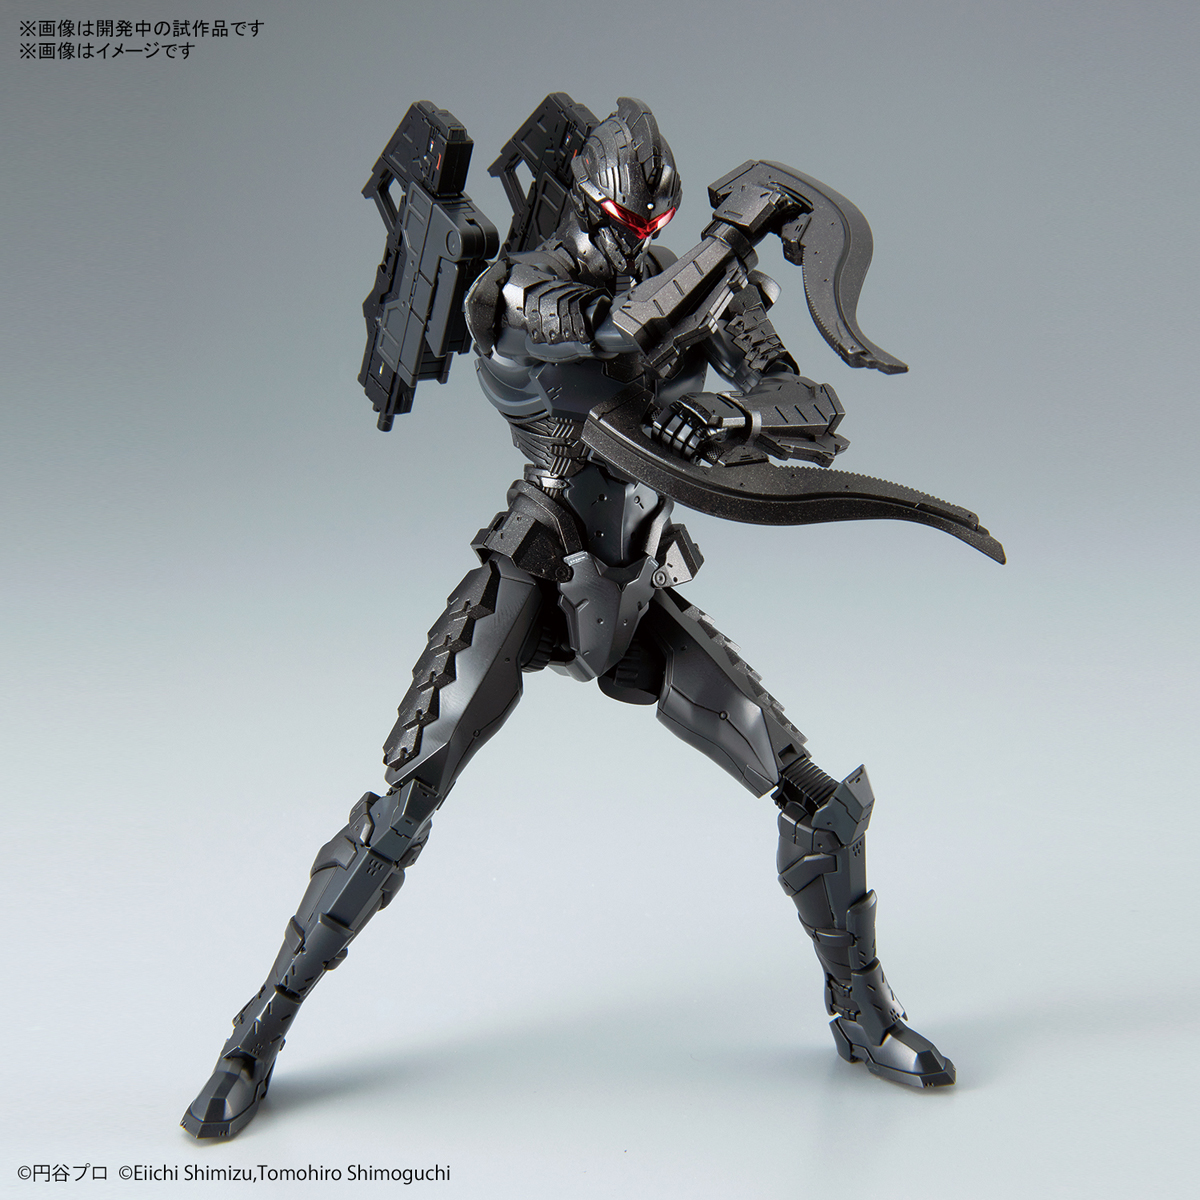 PREORDER BANDAI FIGURE RISE STANDARD ULTRAMAN SUIT 7.5 (FORCED RUSH TYPE) VER ACTION